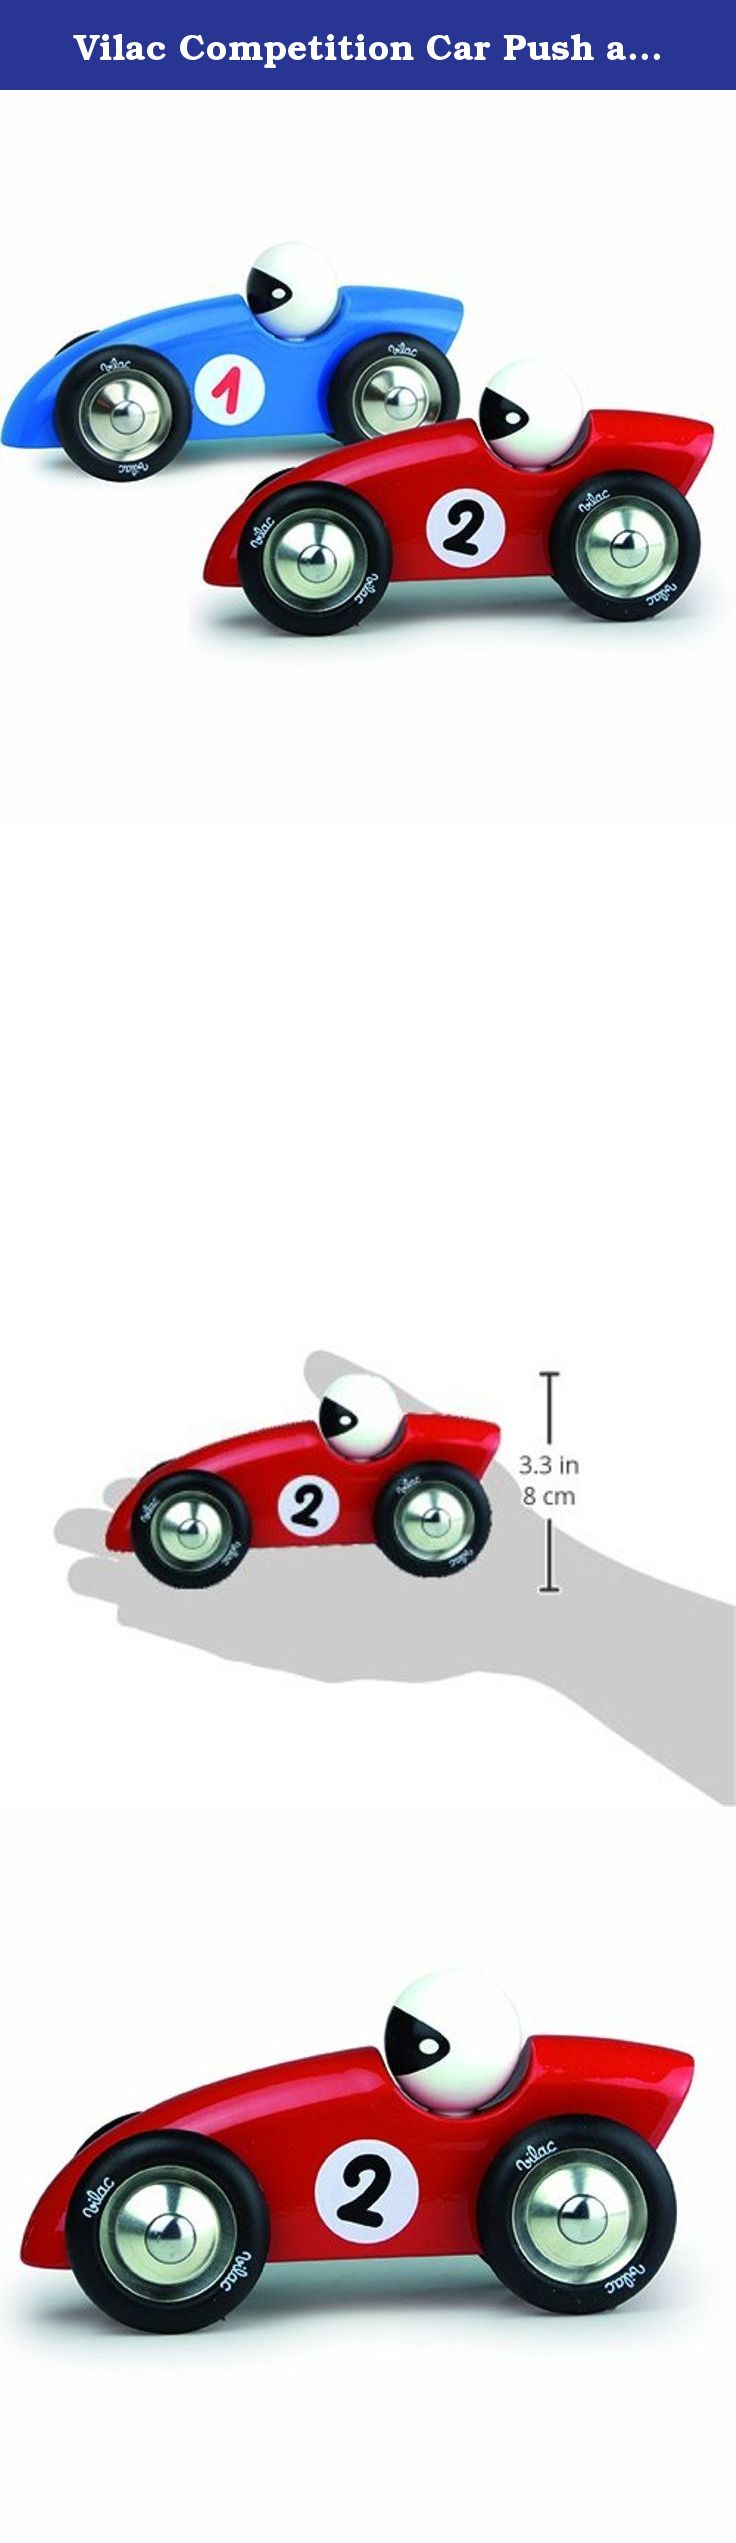 Toys car for baby  Vilac Competition Car Push and Pull Baby Toy Red Large Vilacus